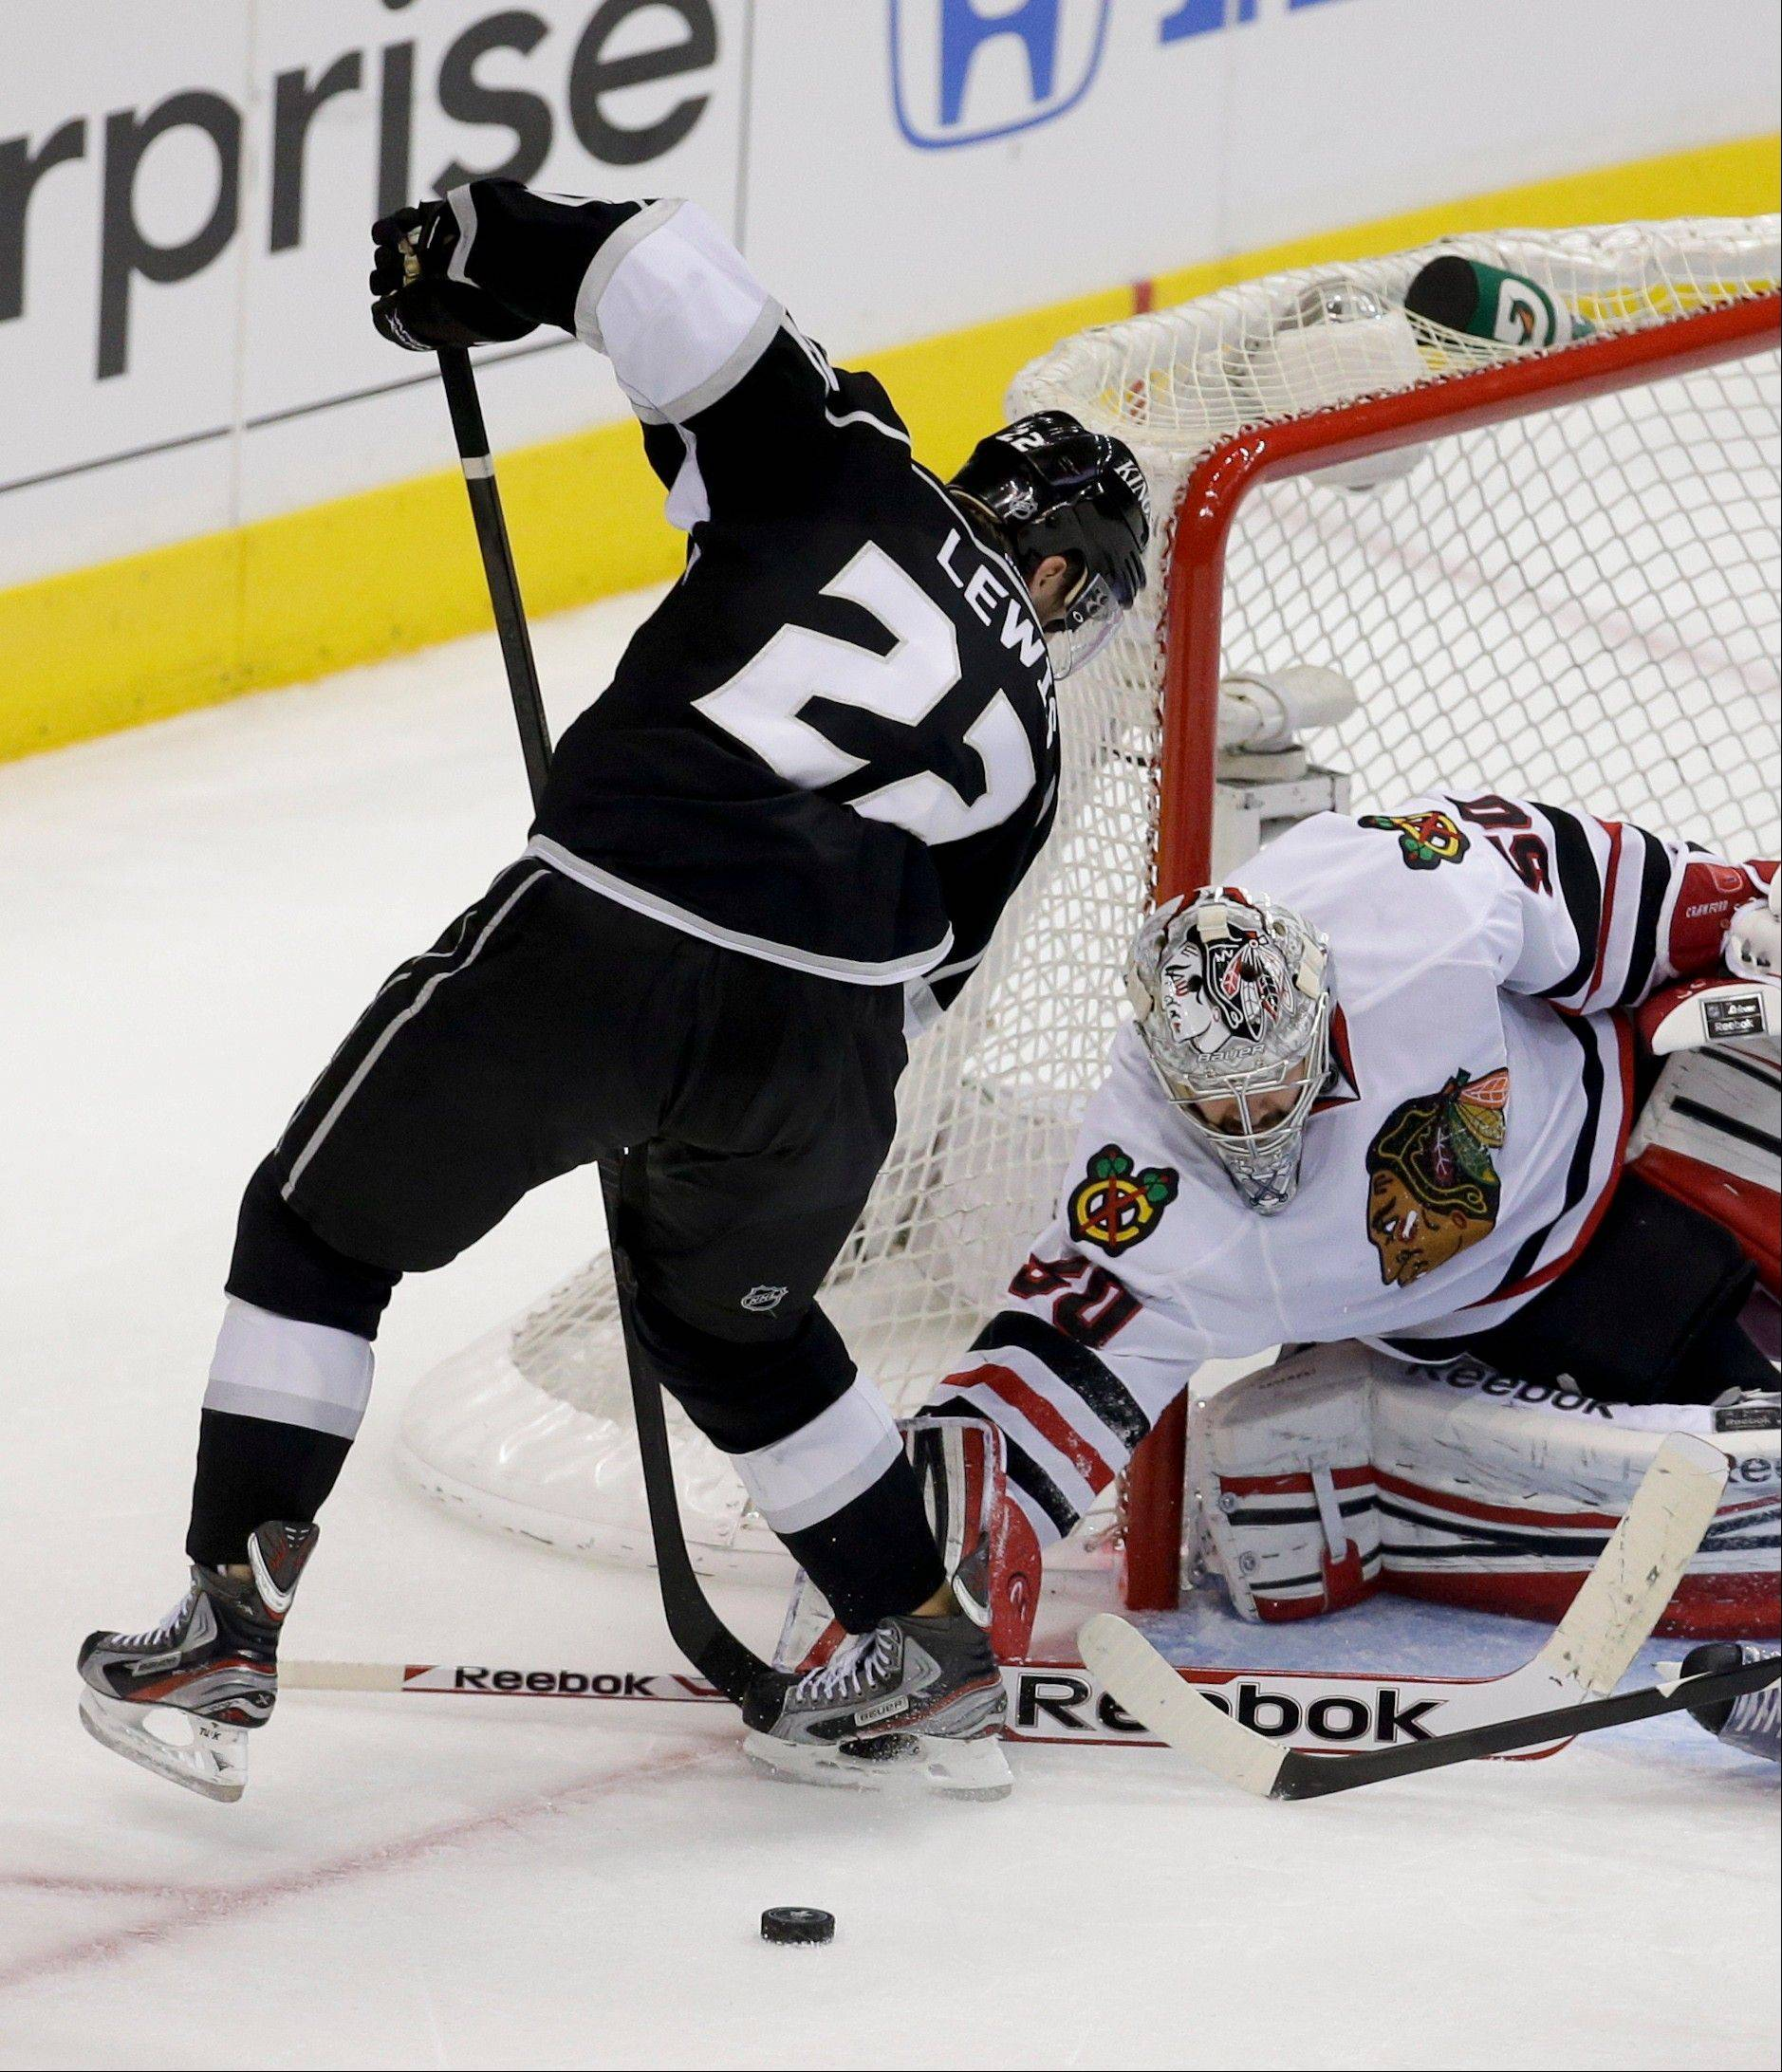 Chicago Blackhawks goalie Corey Crawford, right, blocks a shot by Los Angeles Kings center Trevor Lewis during the third period in Game 4 of the NHL hockey Stanley Cup playoffs Western Conference finals, in Los Angeles on Thursday, June 6, 2013. the Chicago Blackhawks won 3-2.